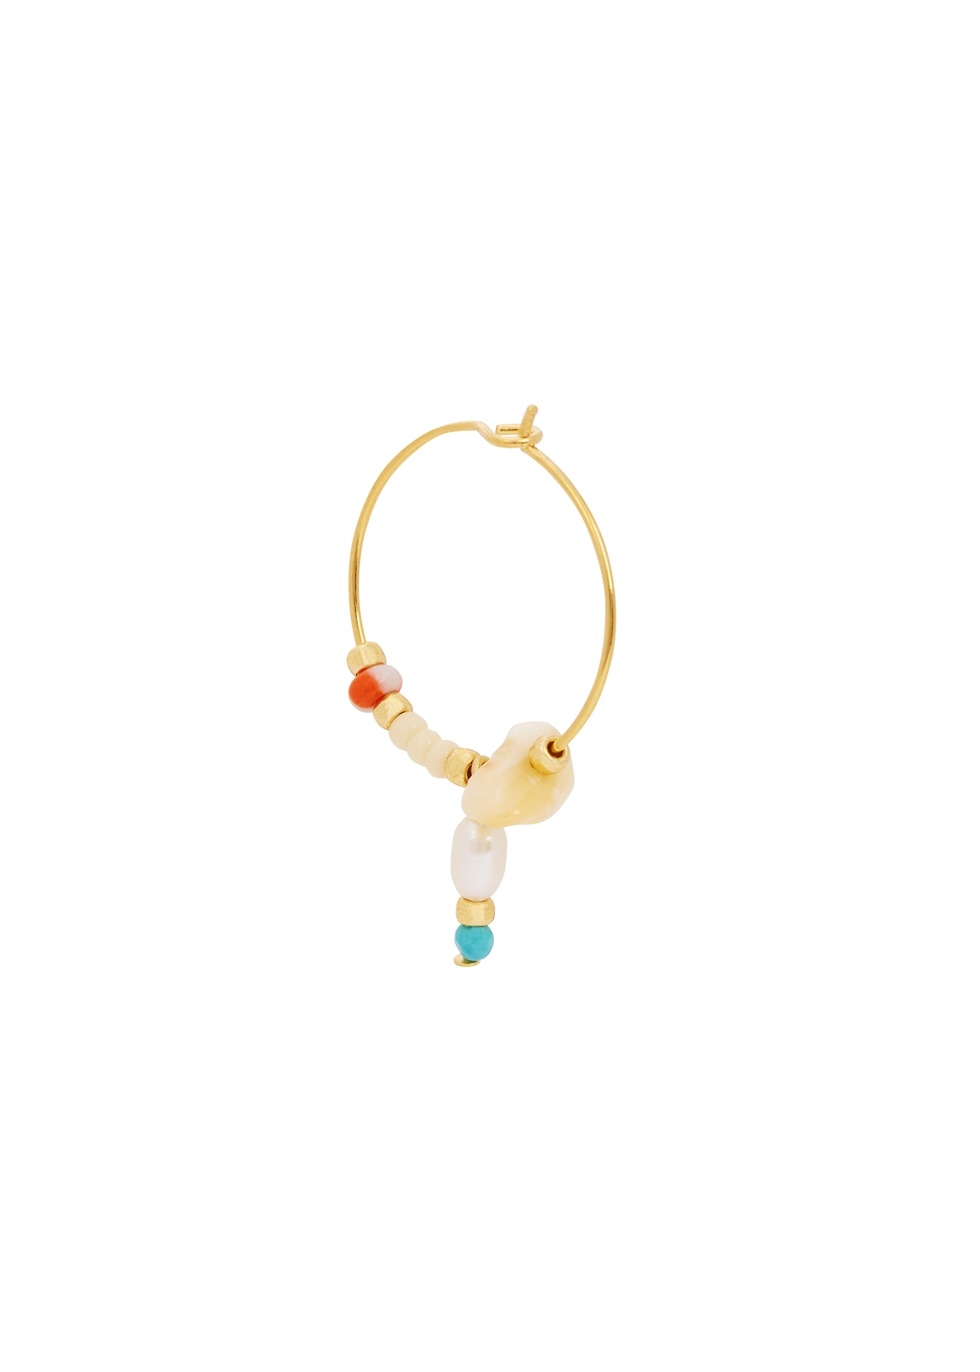 Hanalei 18kt gold-plated hoop earrings - ANNI LU